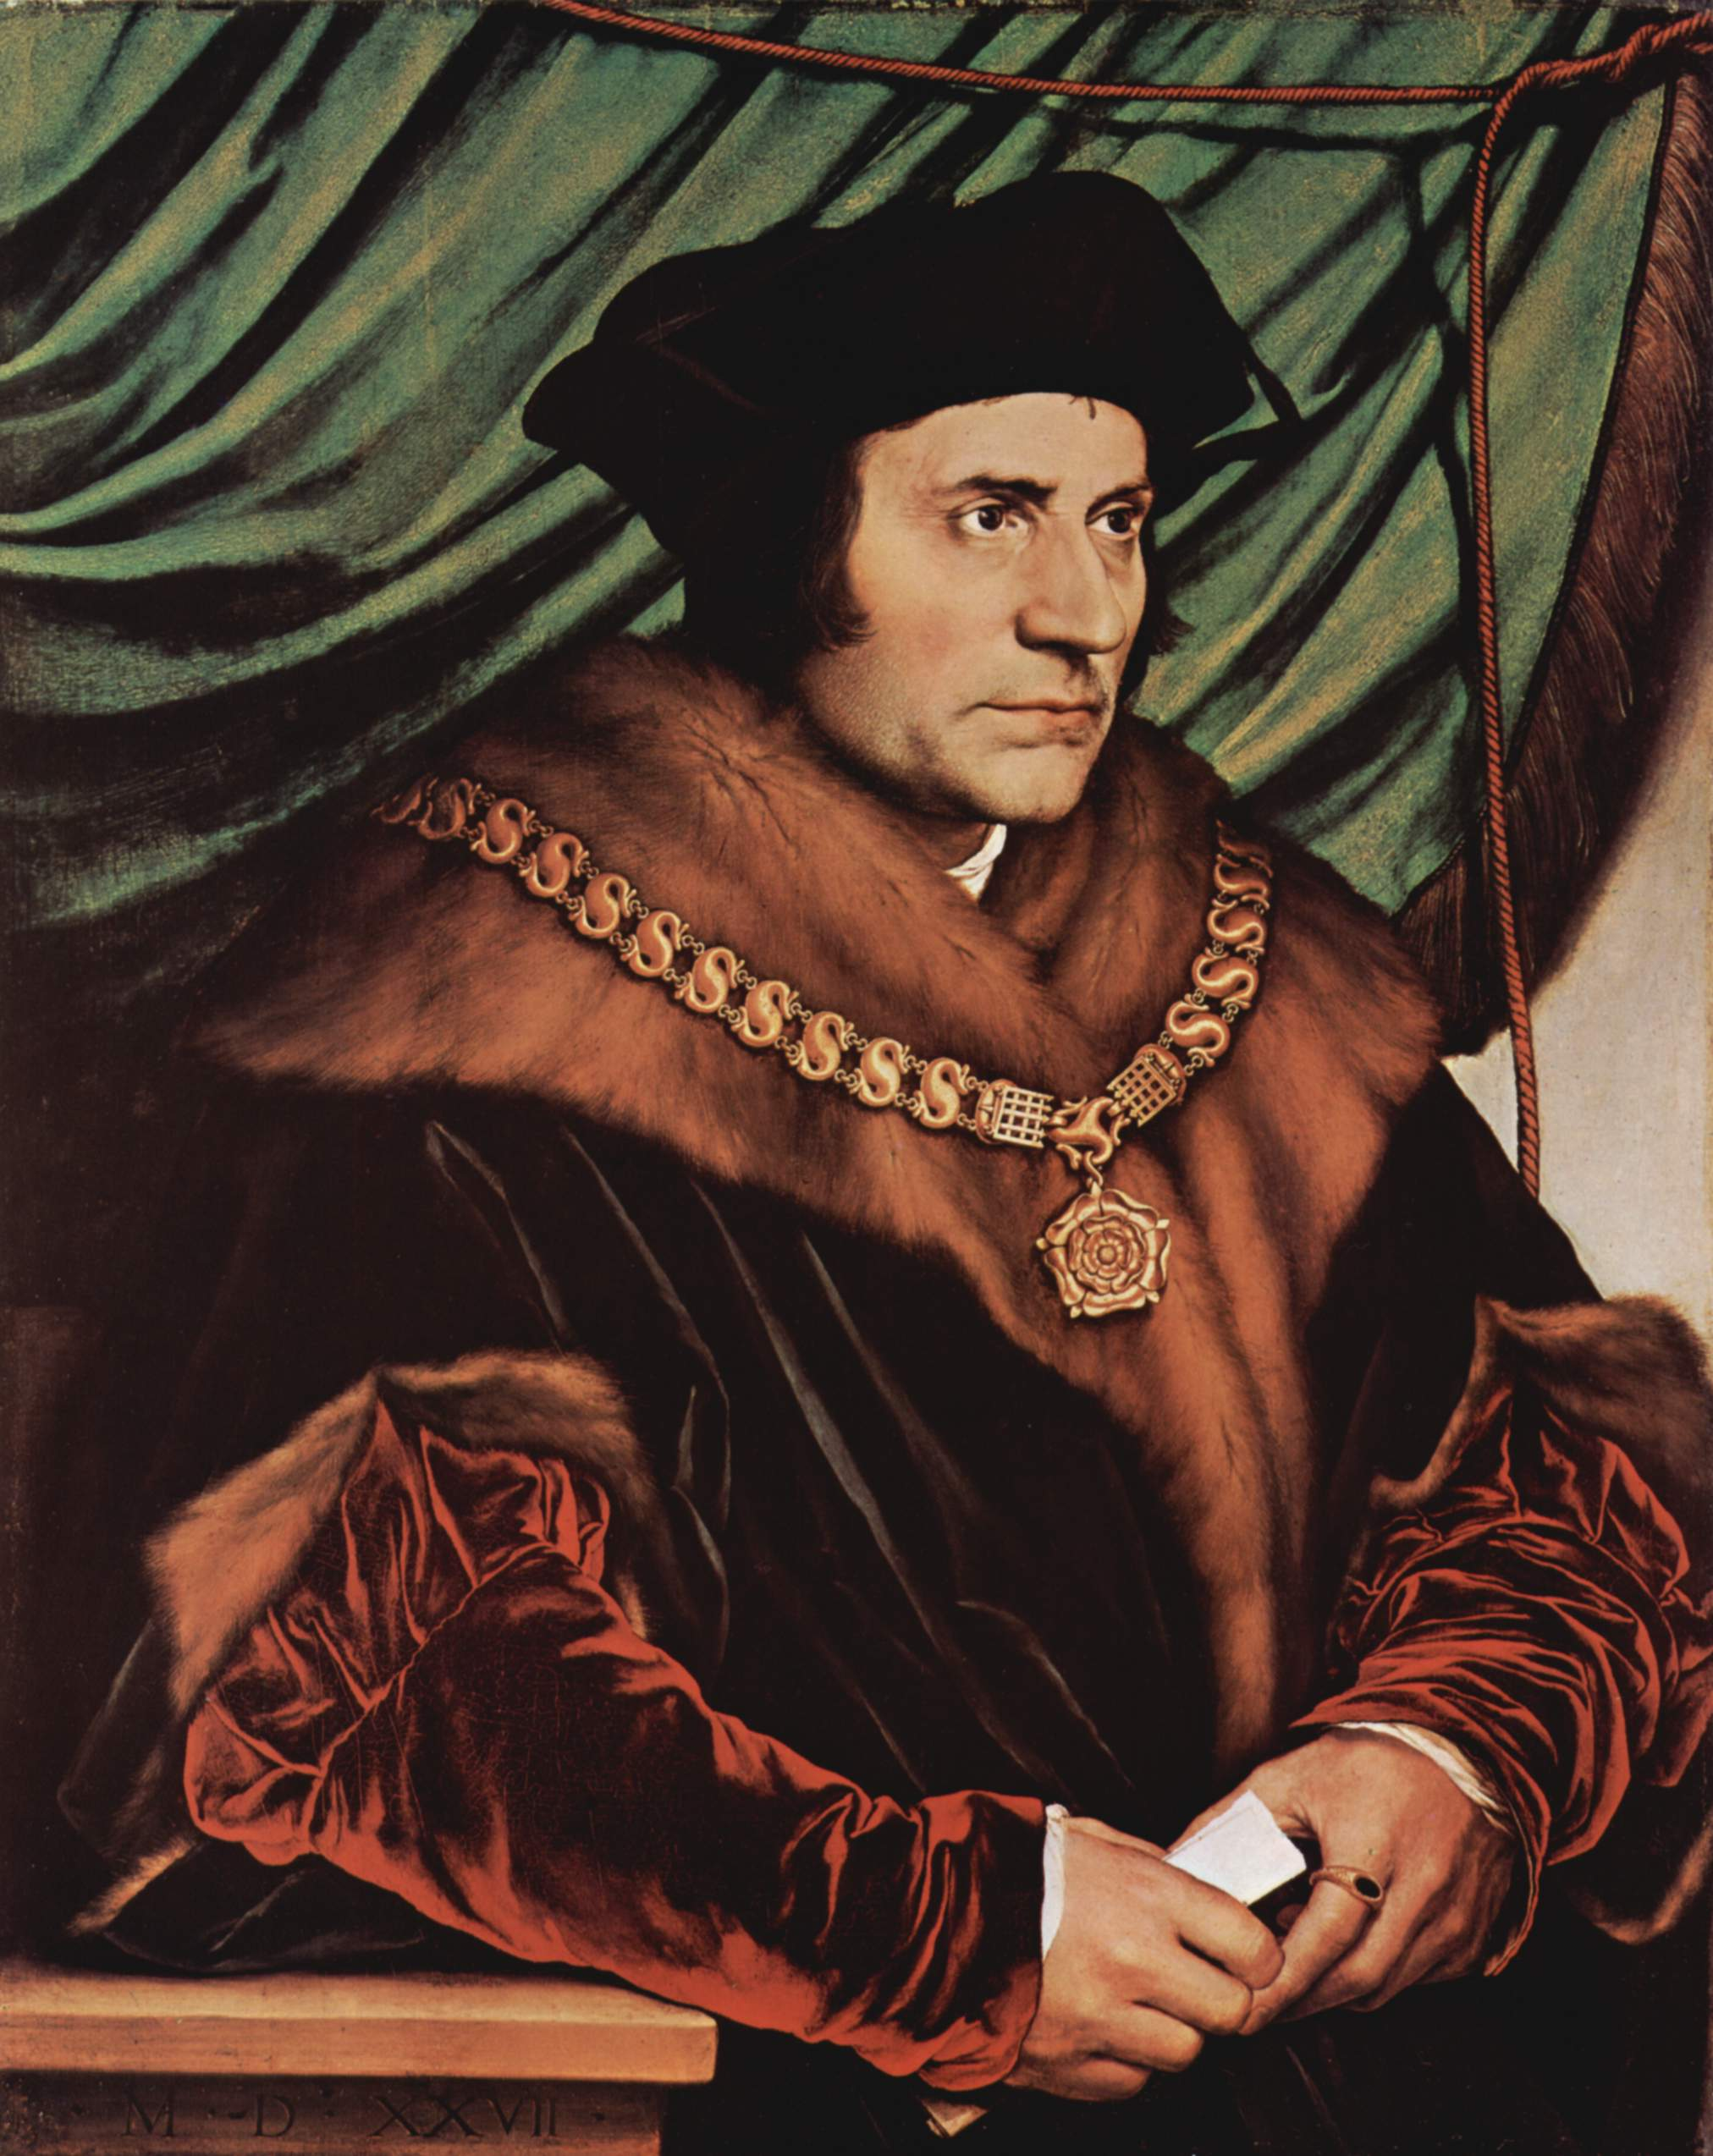 HOLBEIN, Hans the Younger  Sir Thomas More 1527